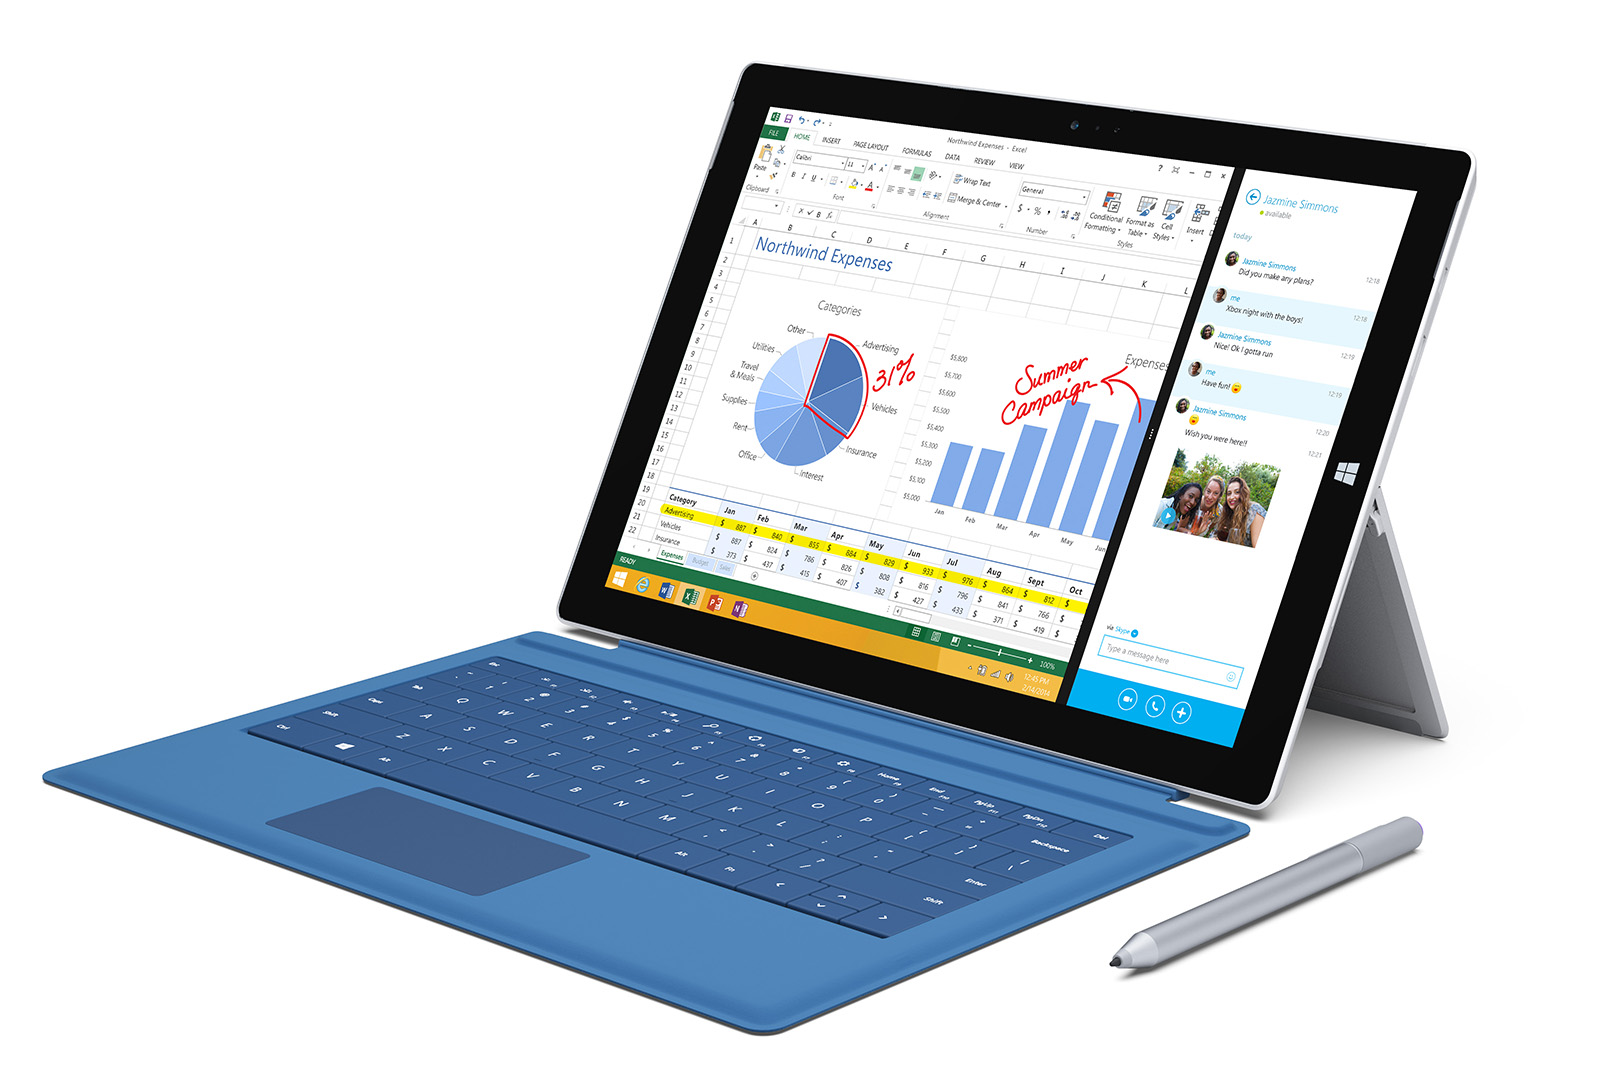 Surface Pro 3 Type Cover: A Better Tablet Keyboard?